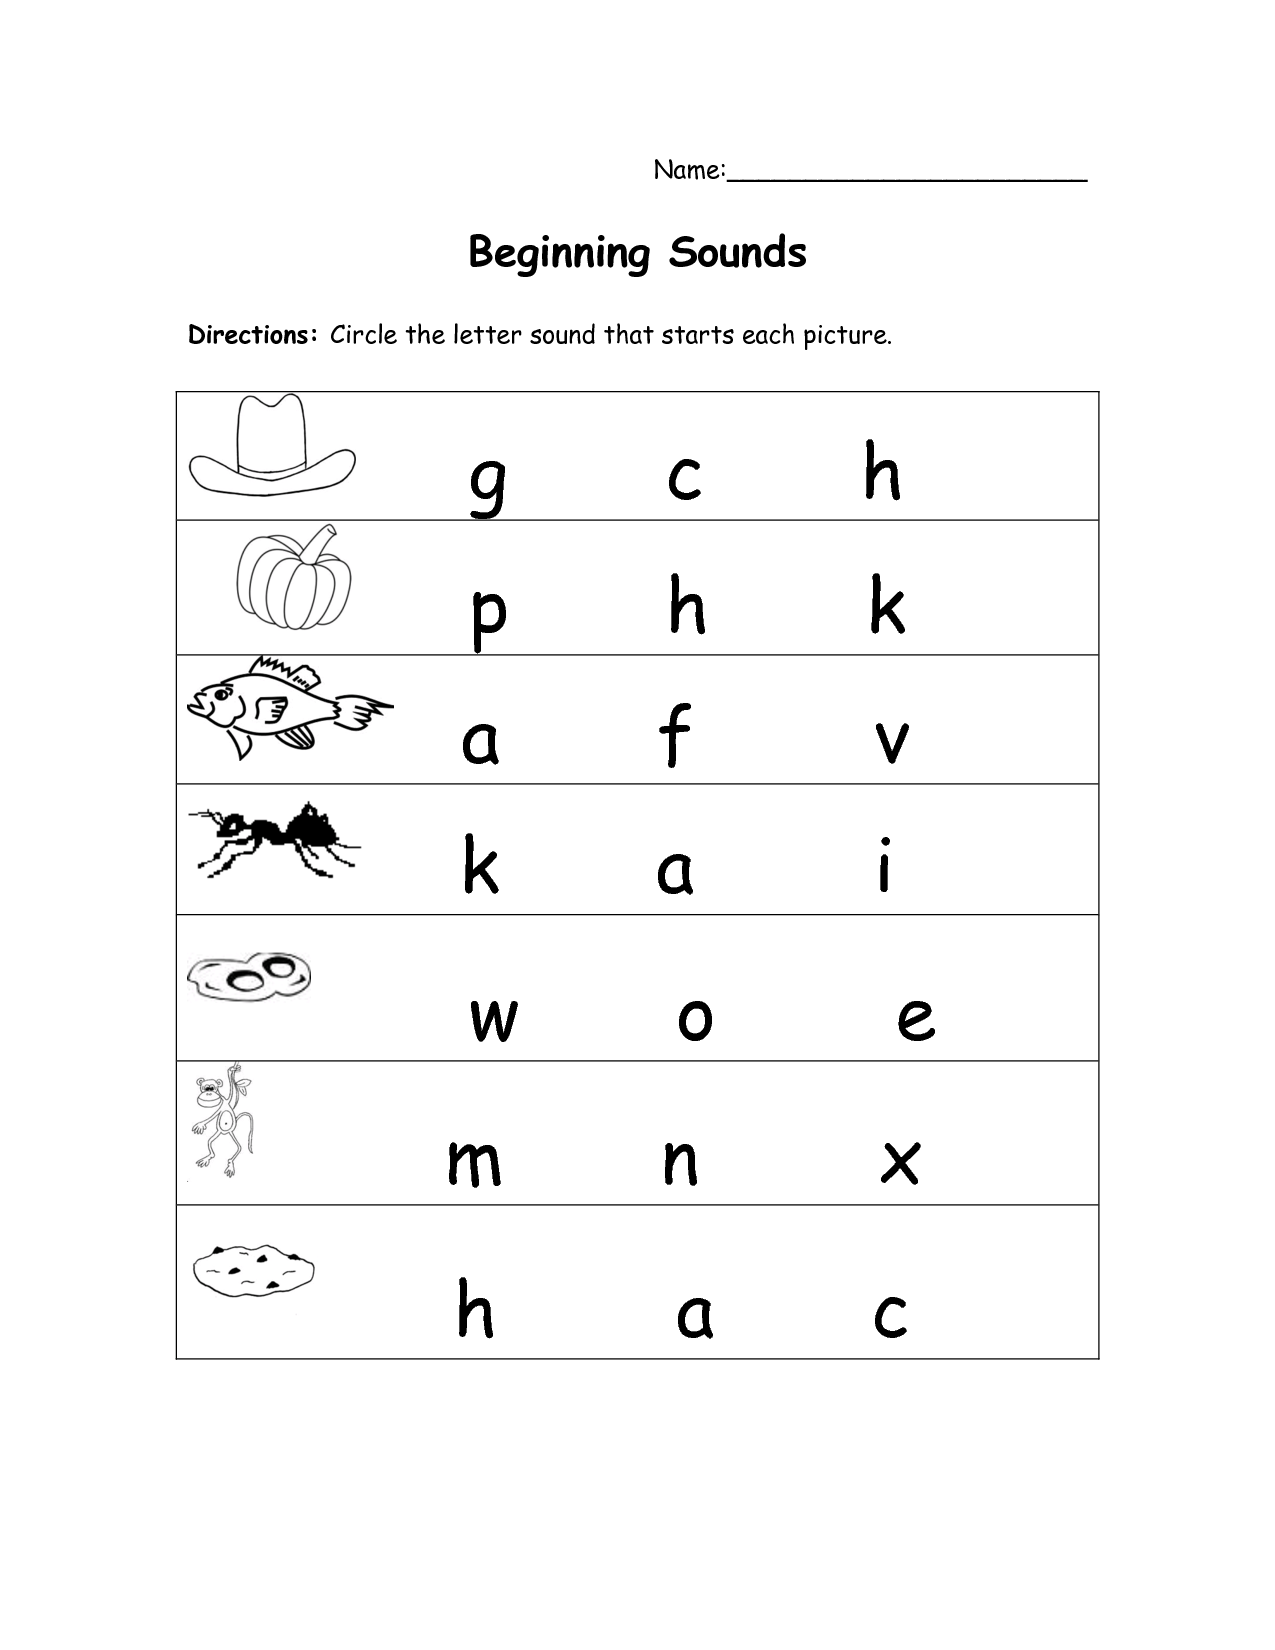 Kindergarteen Ending Sound Worksheet